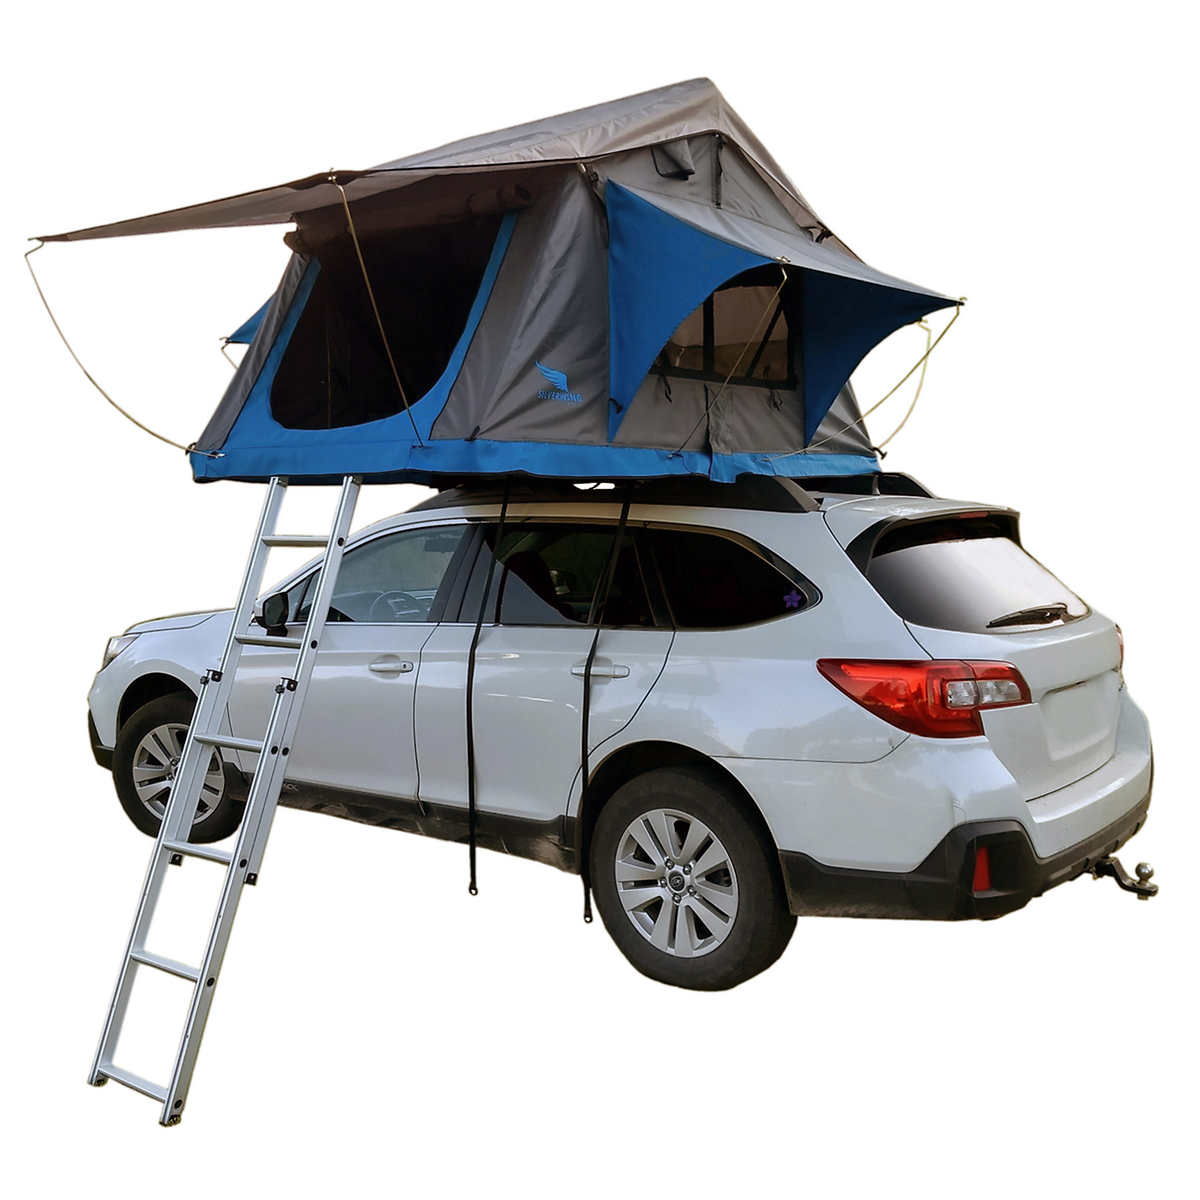 Silverwing Swt80s 2 Person Roof Top Tent